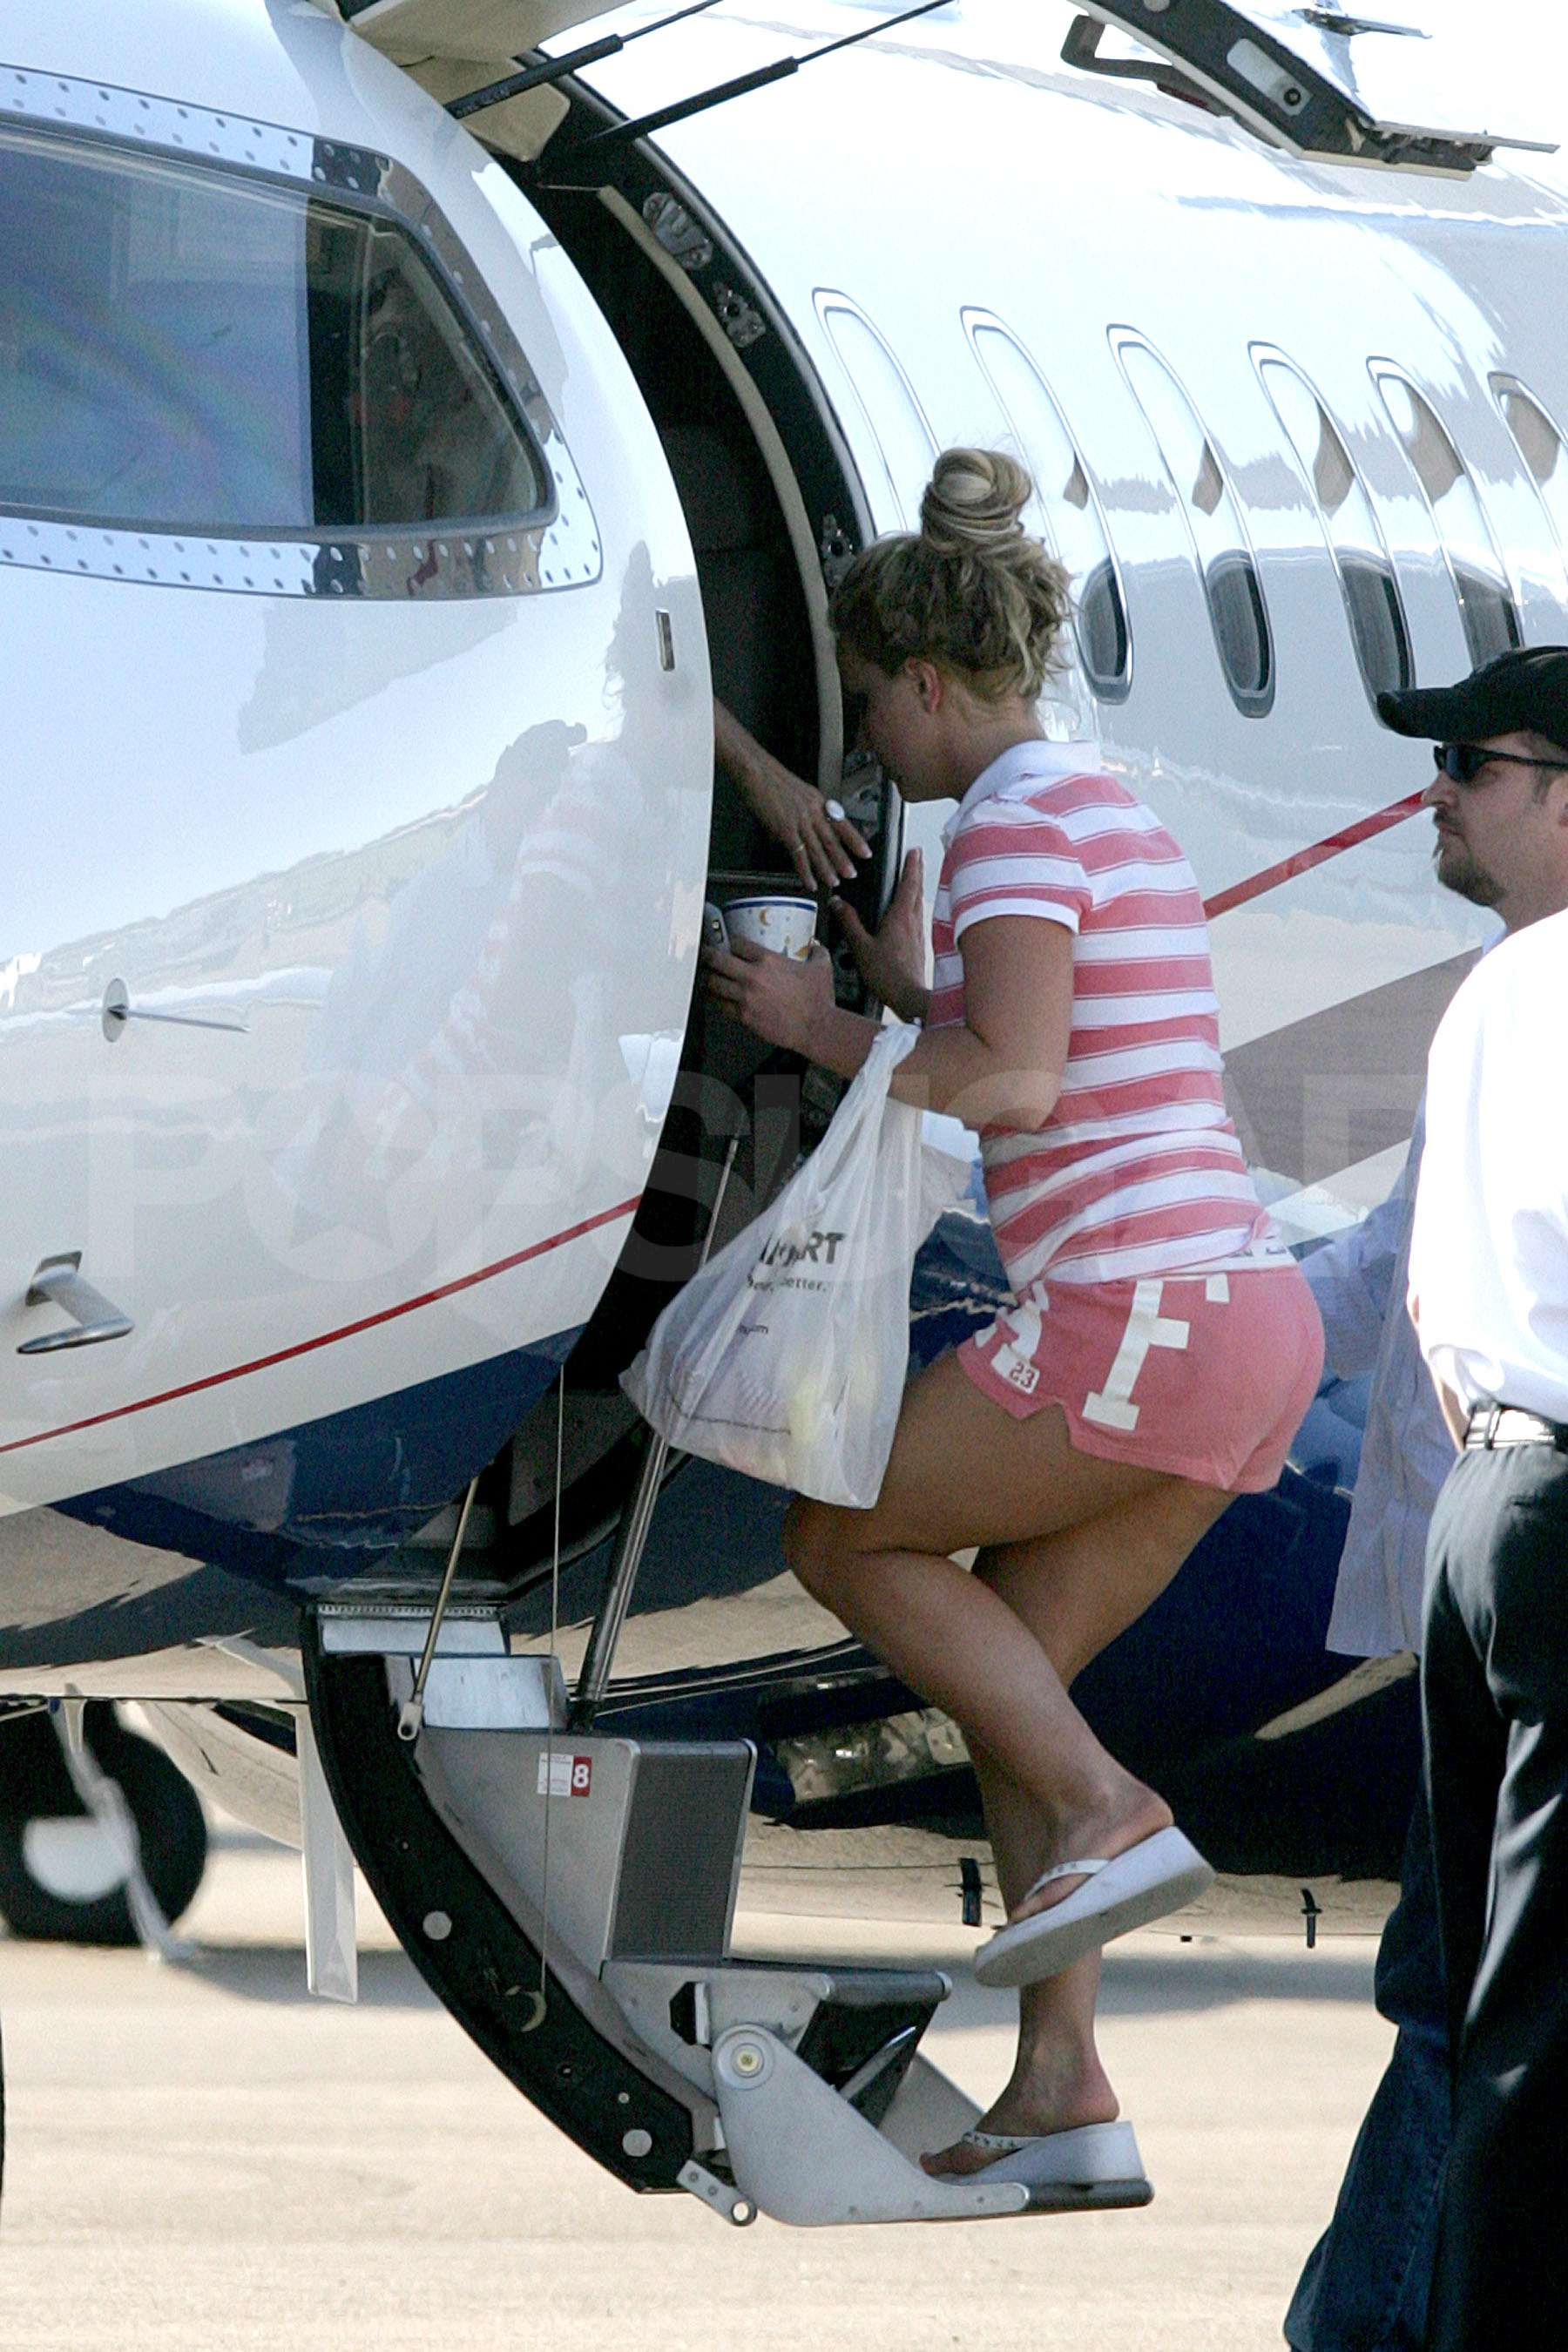 Britney Spears boards a private jet with her mother, Lynn and father, Jamie at a private airport in Mississippi.